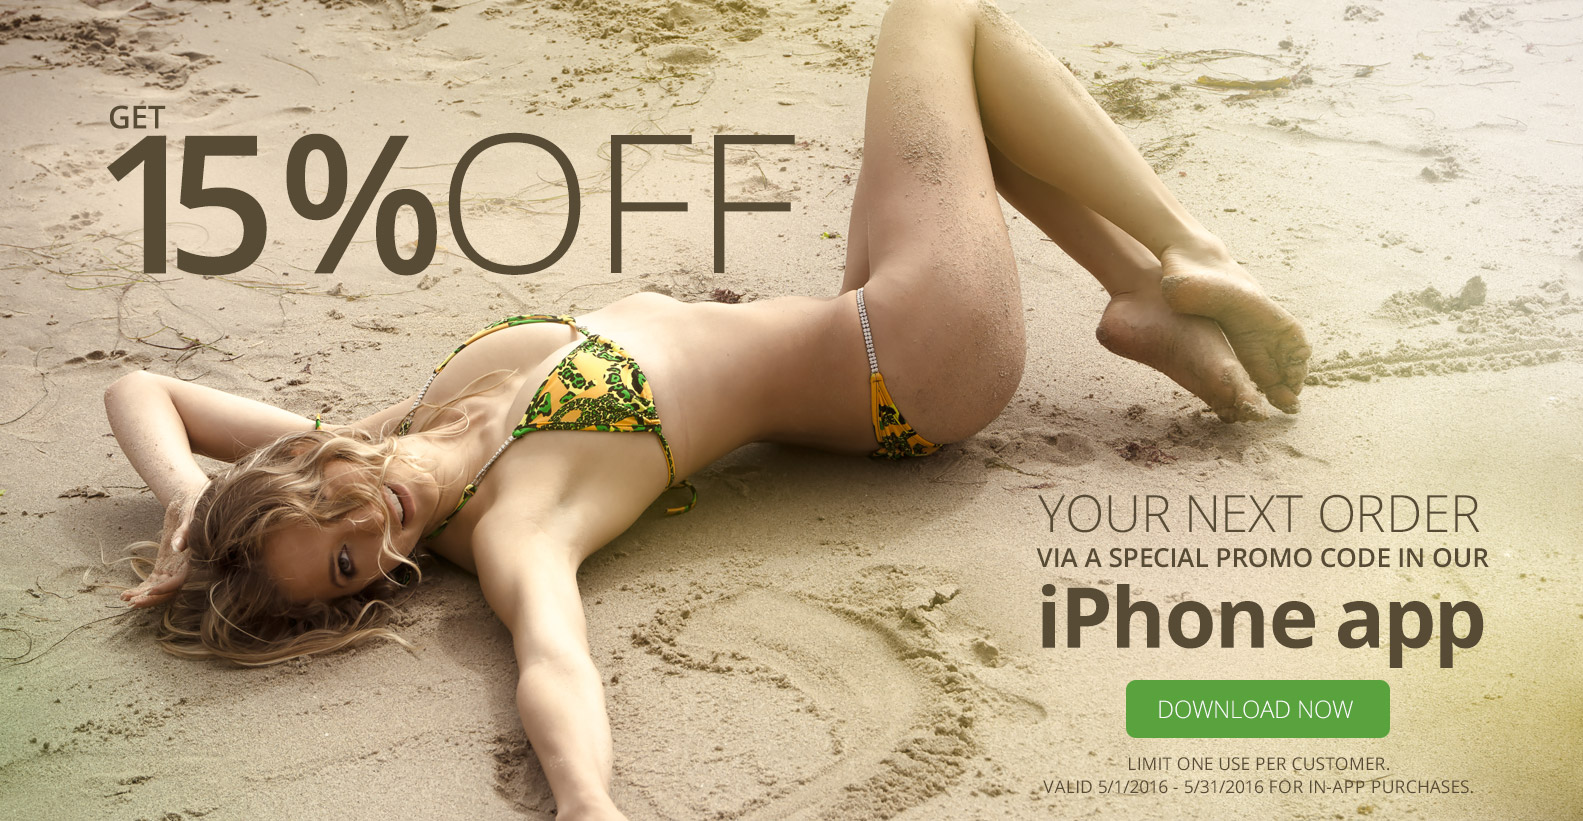 Get 15% off using our iPhone app!